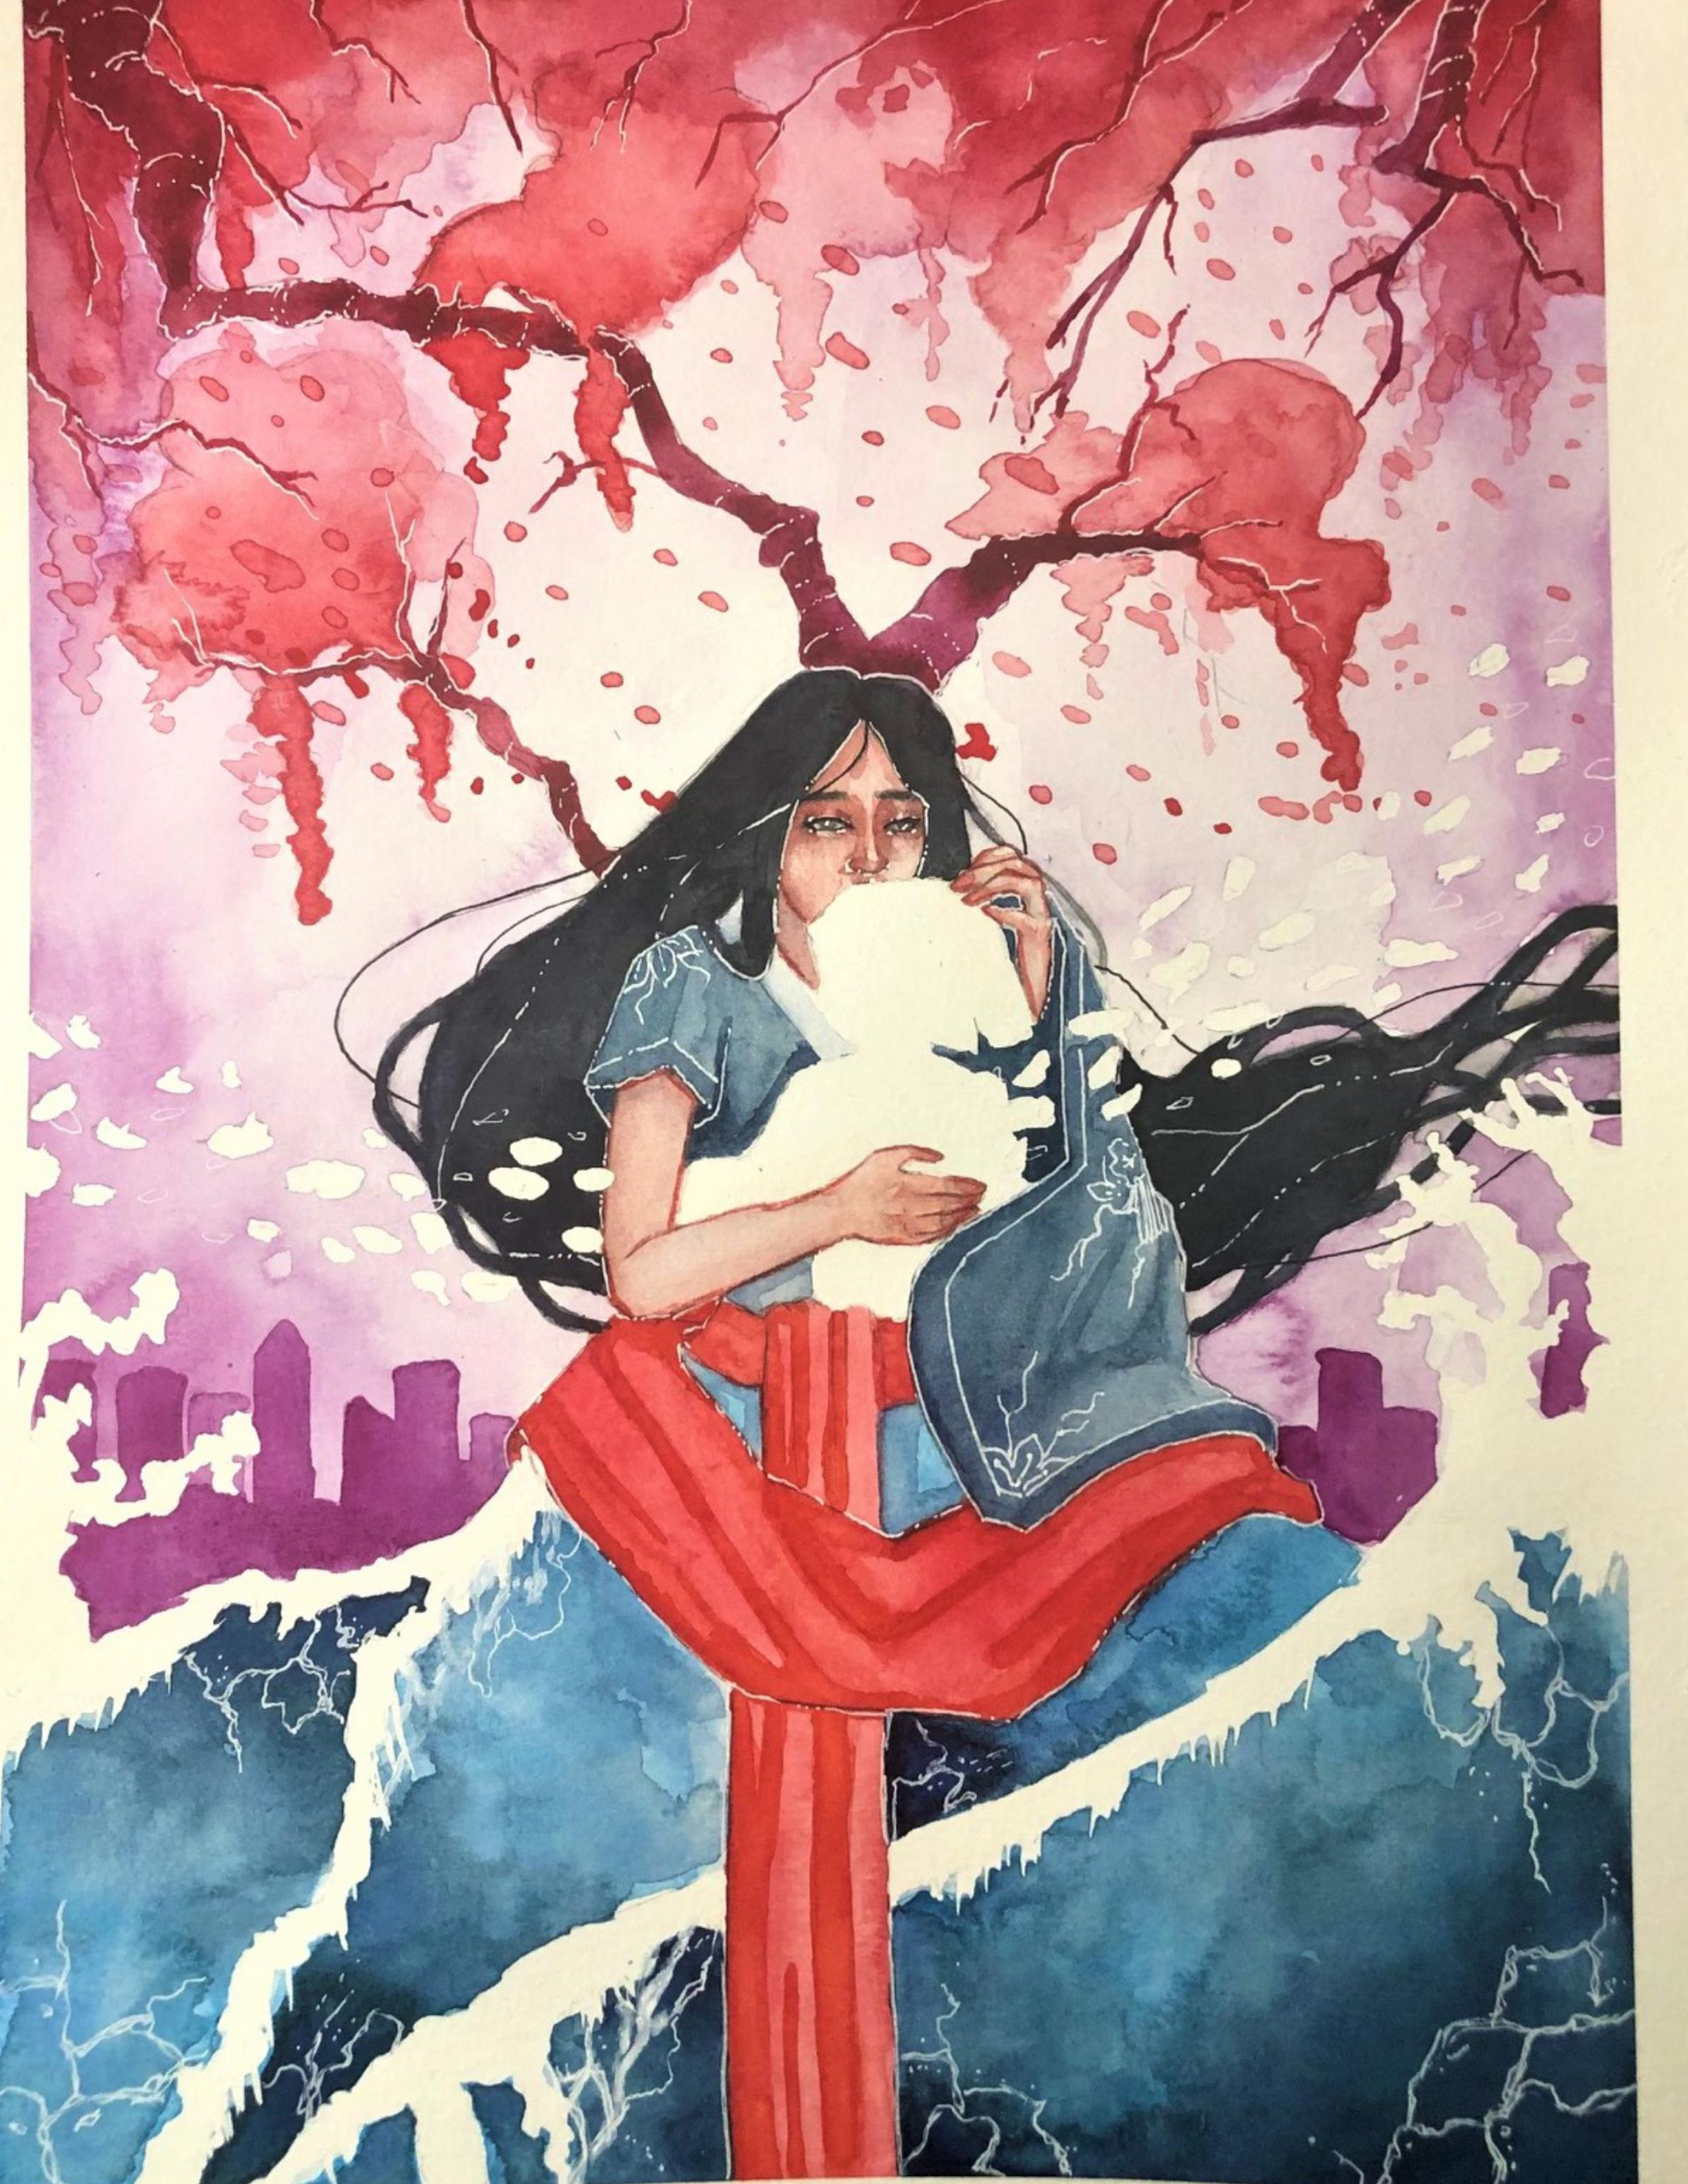 Poster for Kokoro: True Heart. A woman holding the outline of a baby in front of a pink, flowering tree.